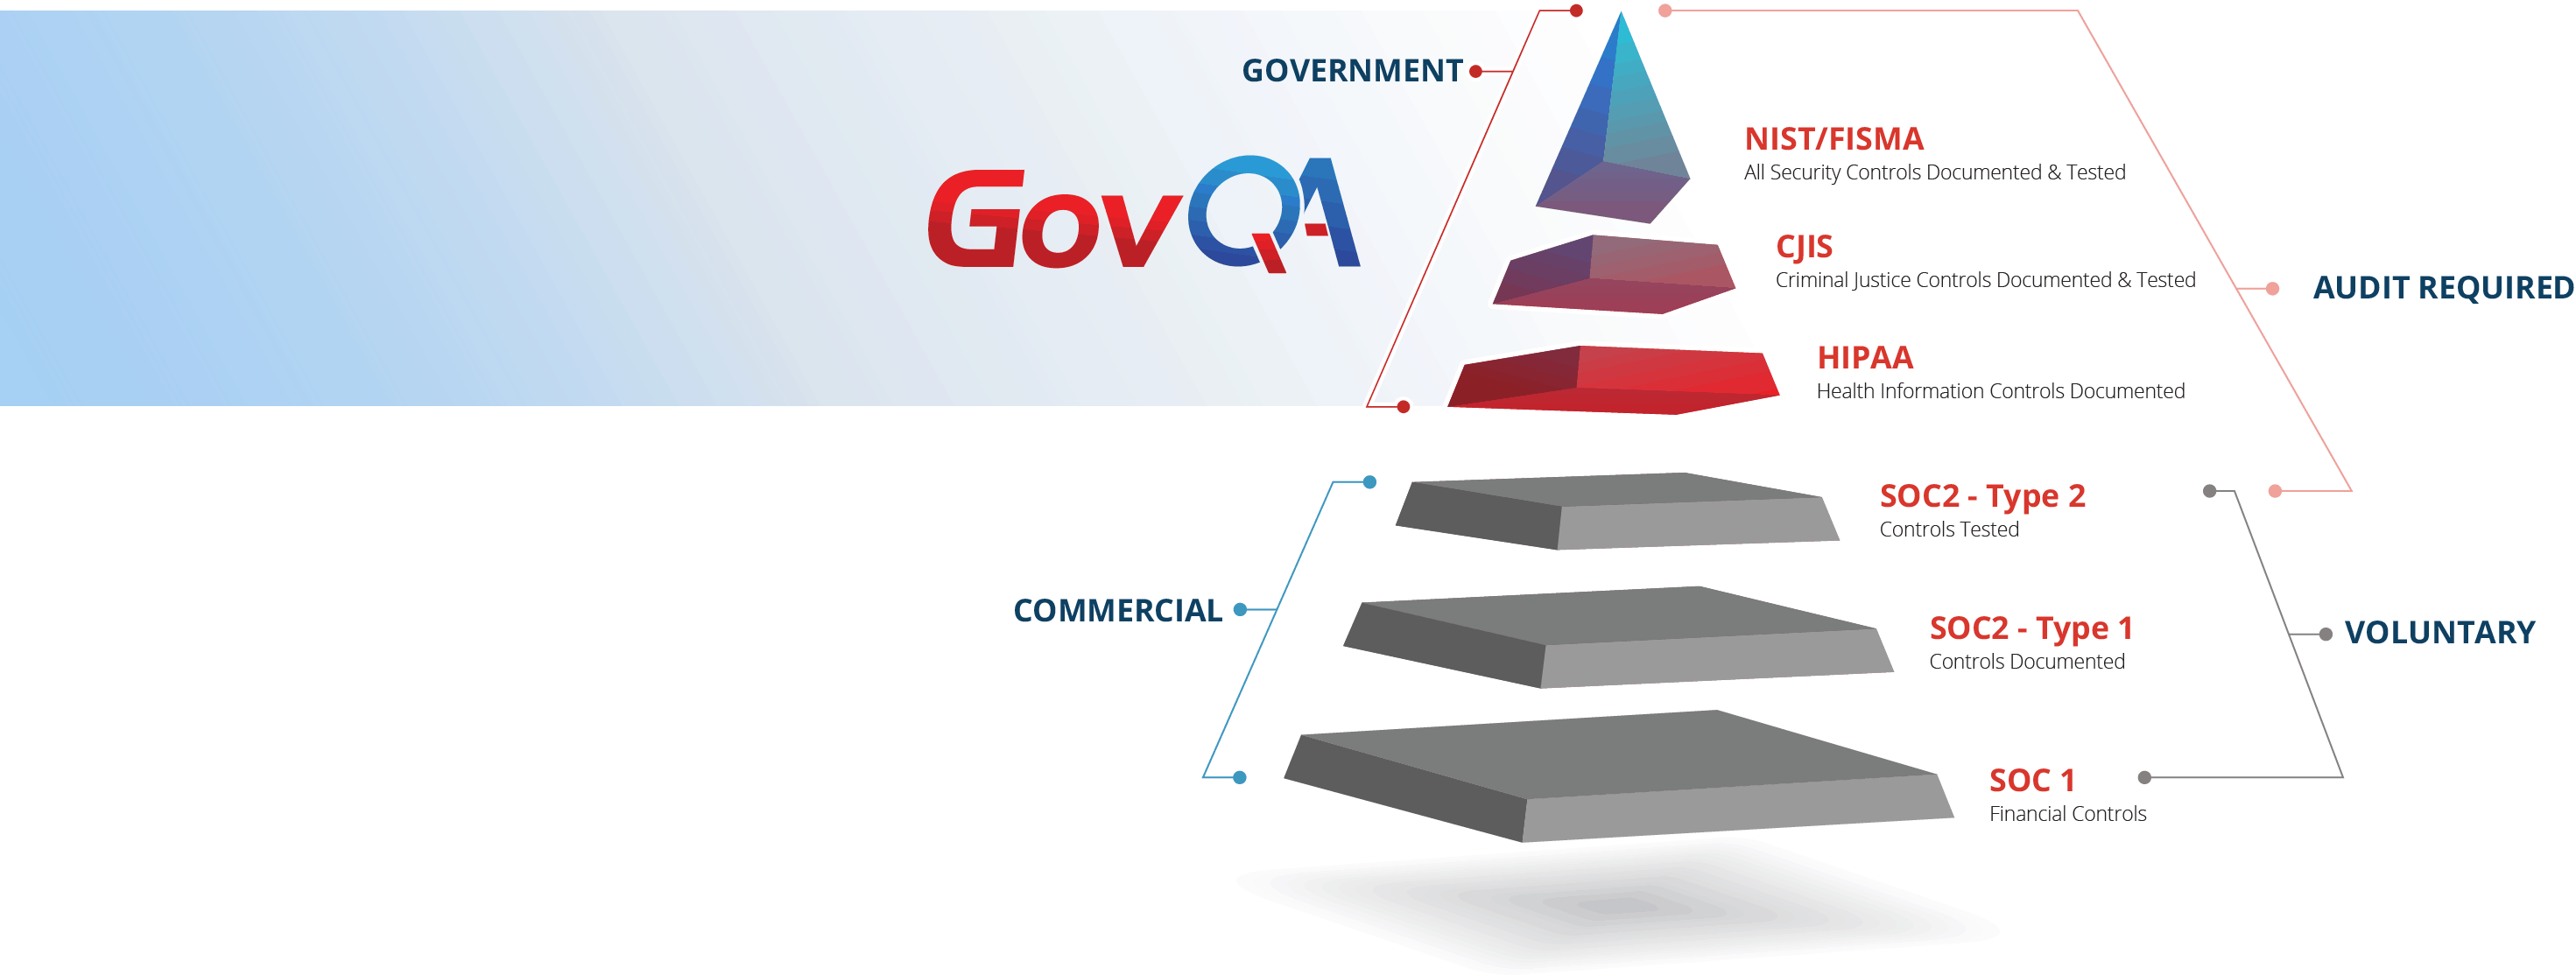 GovQA Security Triangle 3rd Party Compliance